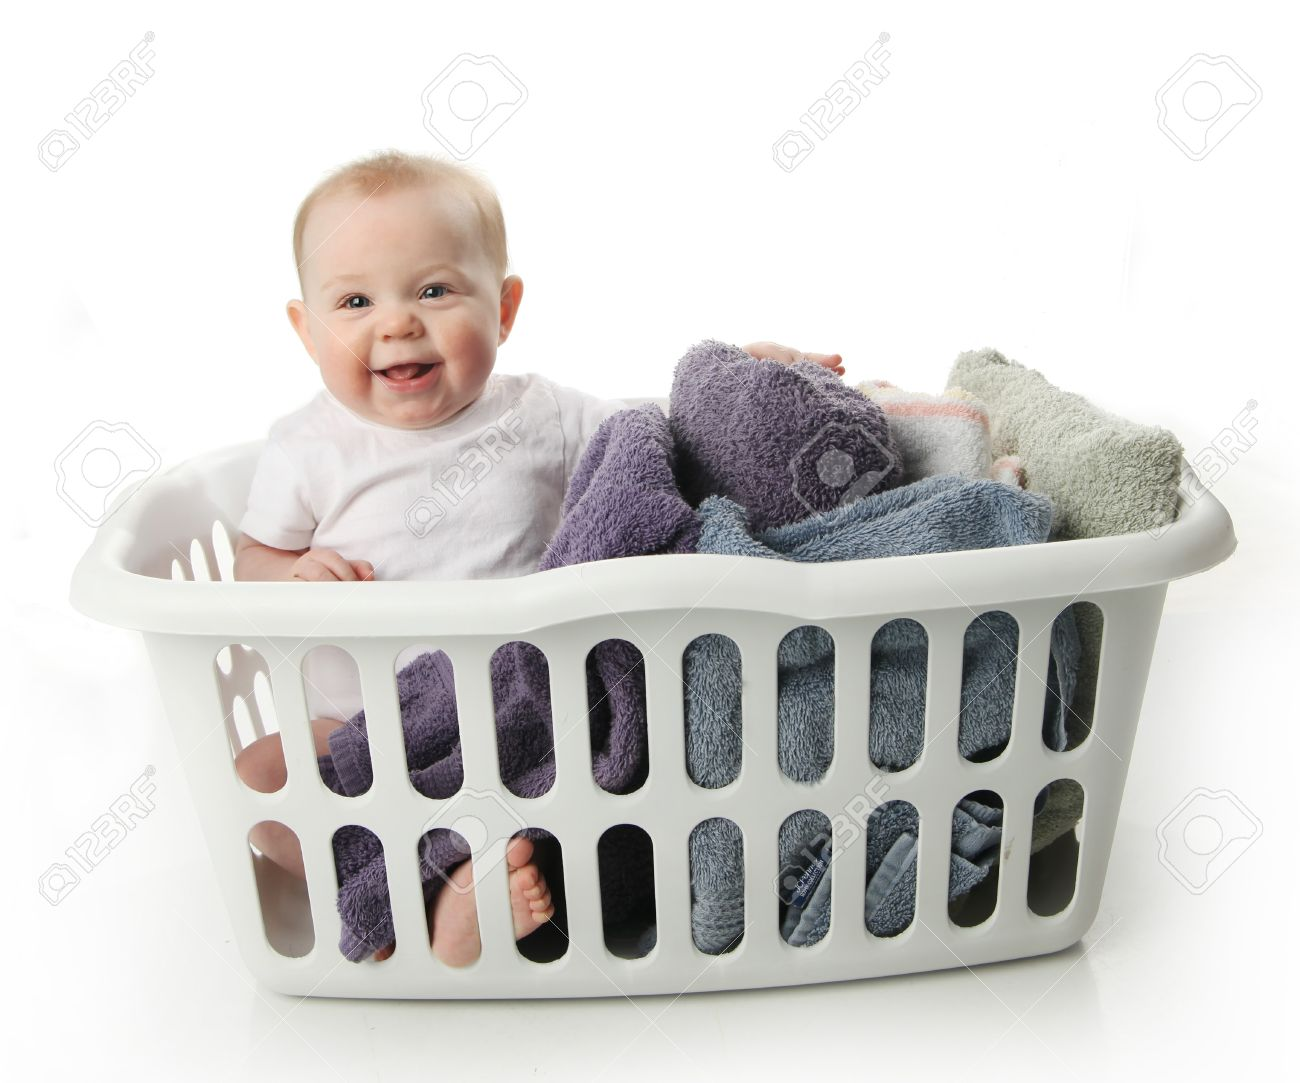 Portrait of an adorable baby sitting in a laundry basket with towels - 9939571